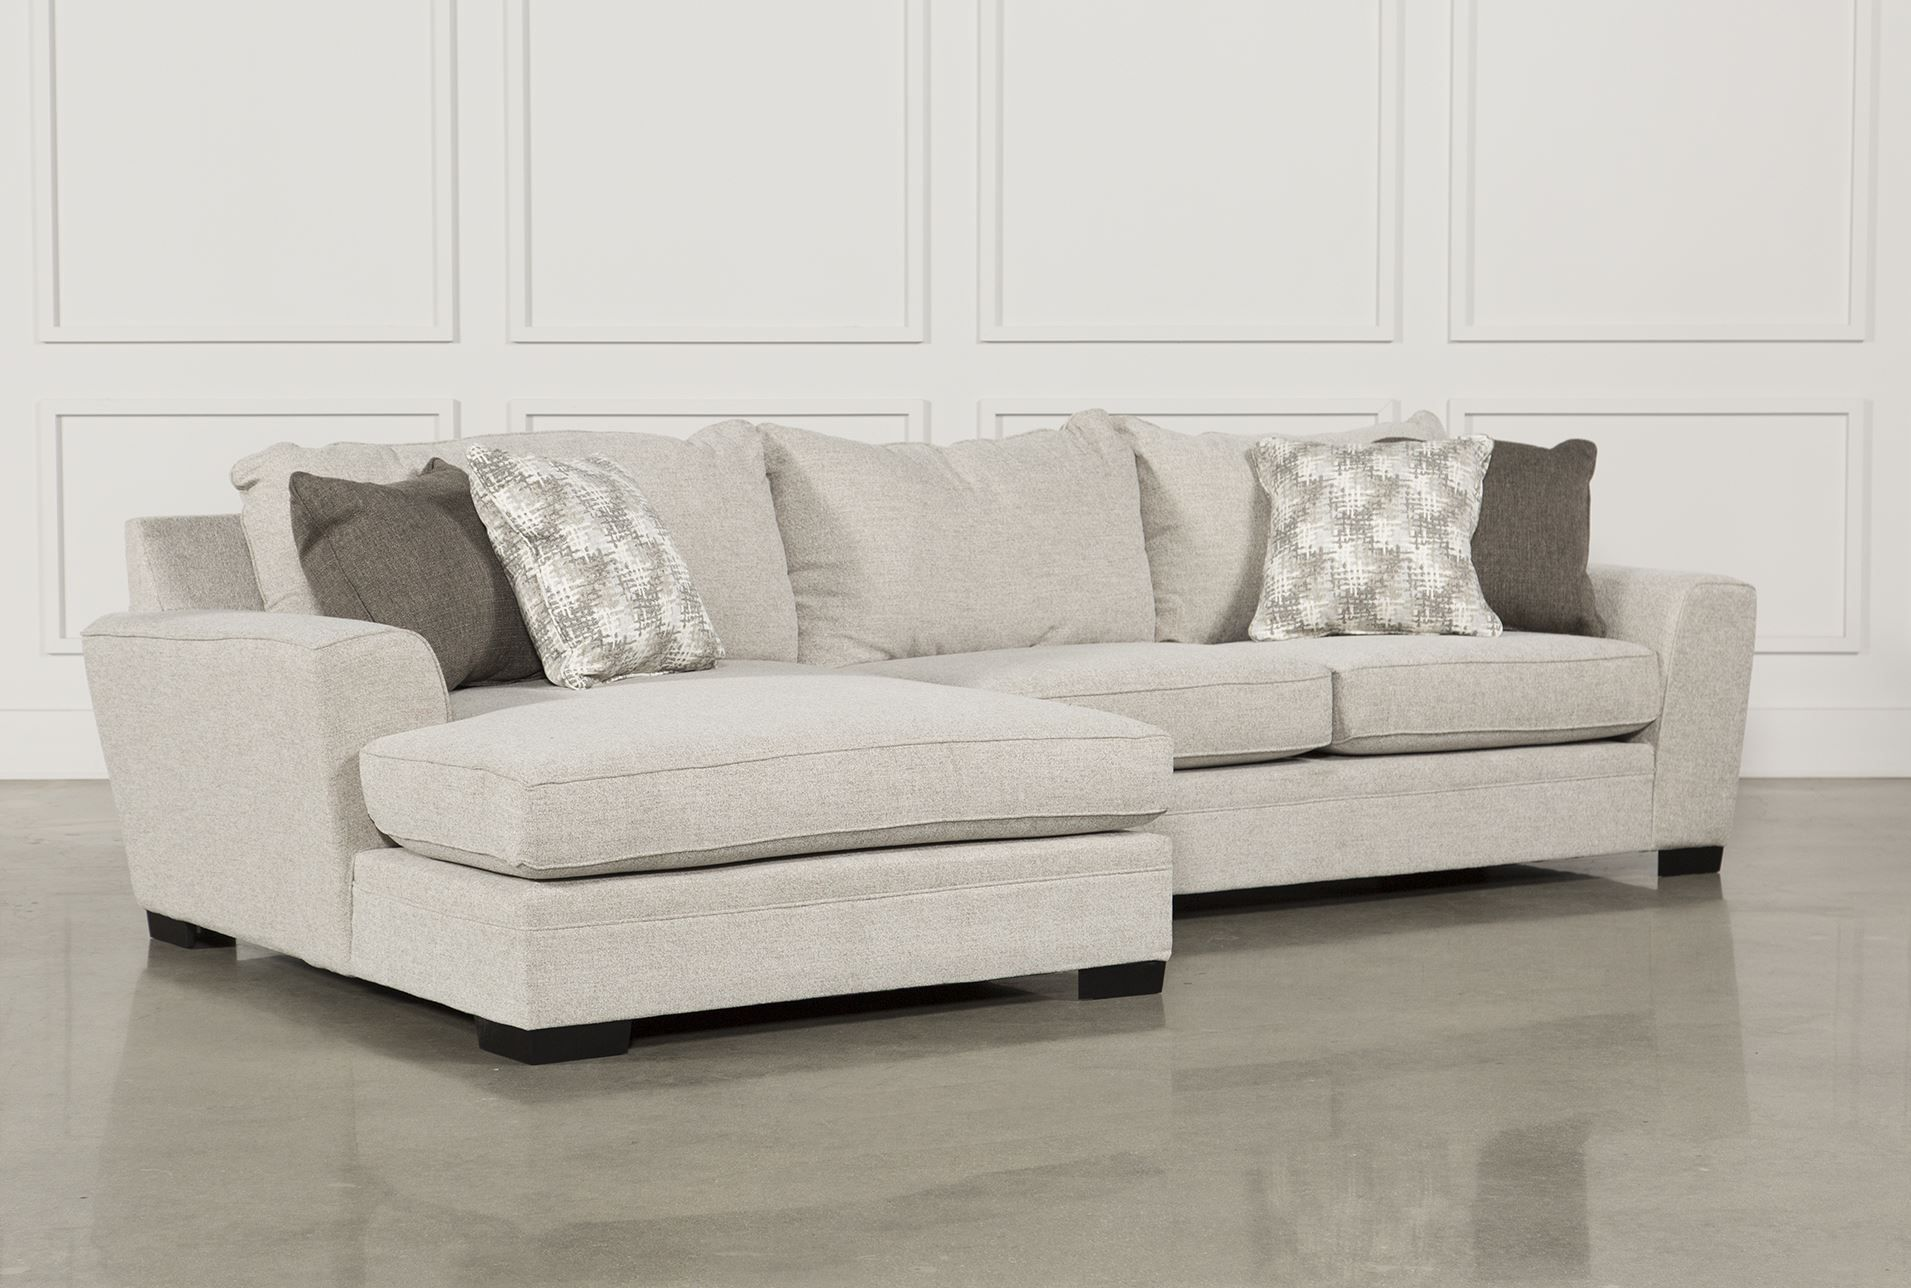 Best Delano 2 Piece Sectional W Laf Chaise Signature In 2019 400 x 300